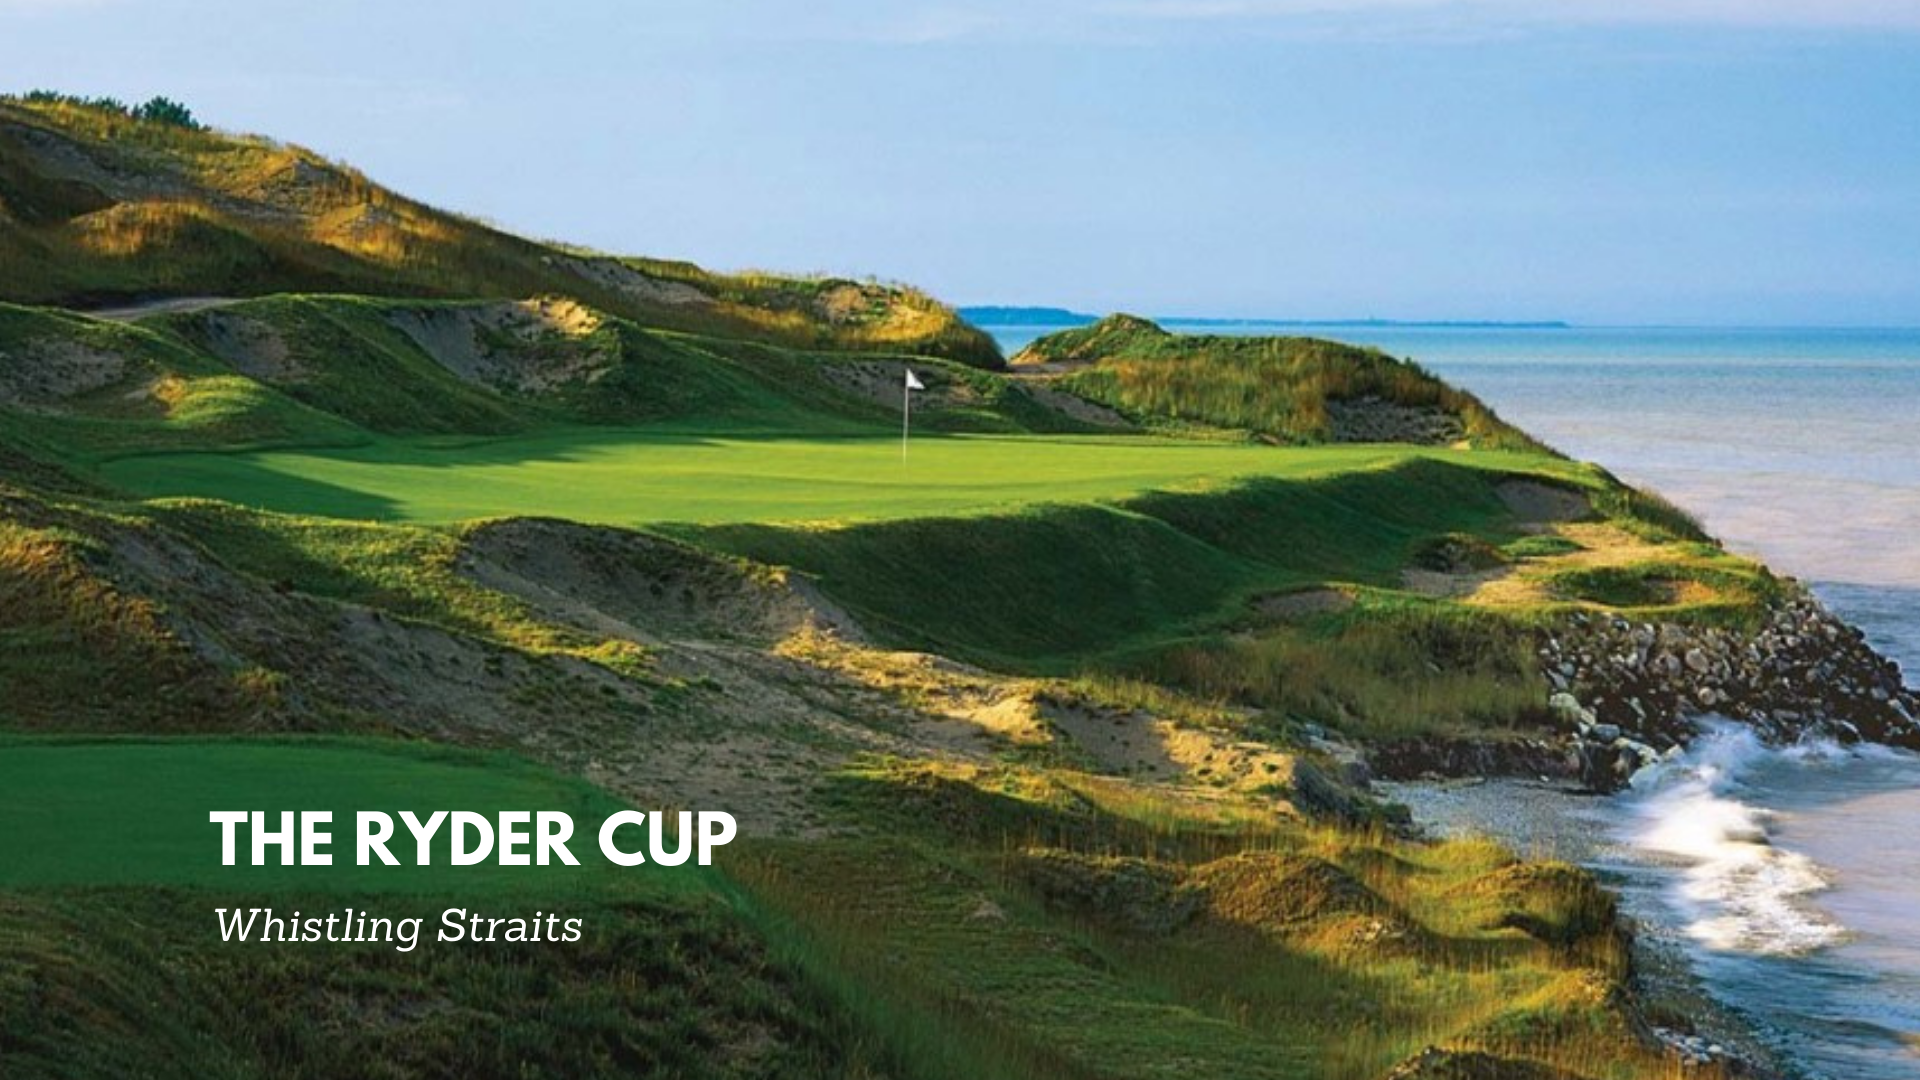 Third Ryder Cup win for the Americans